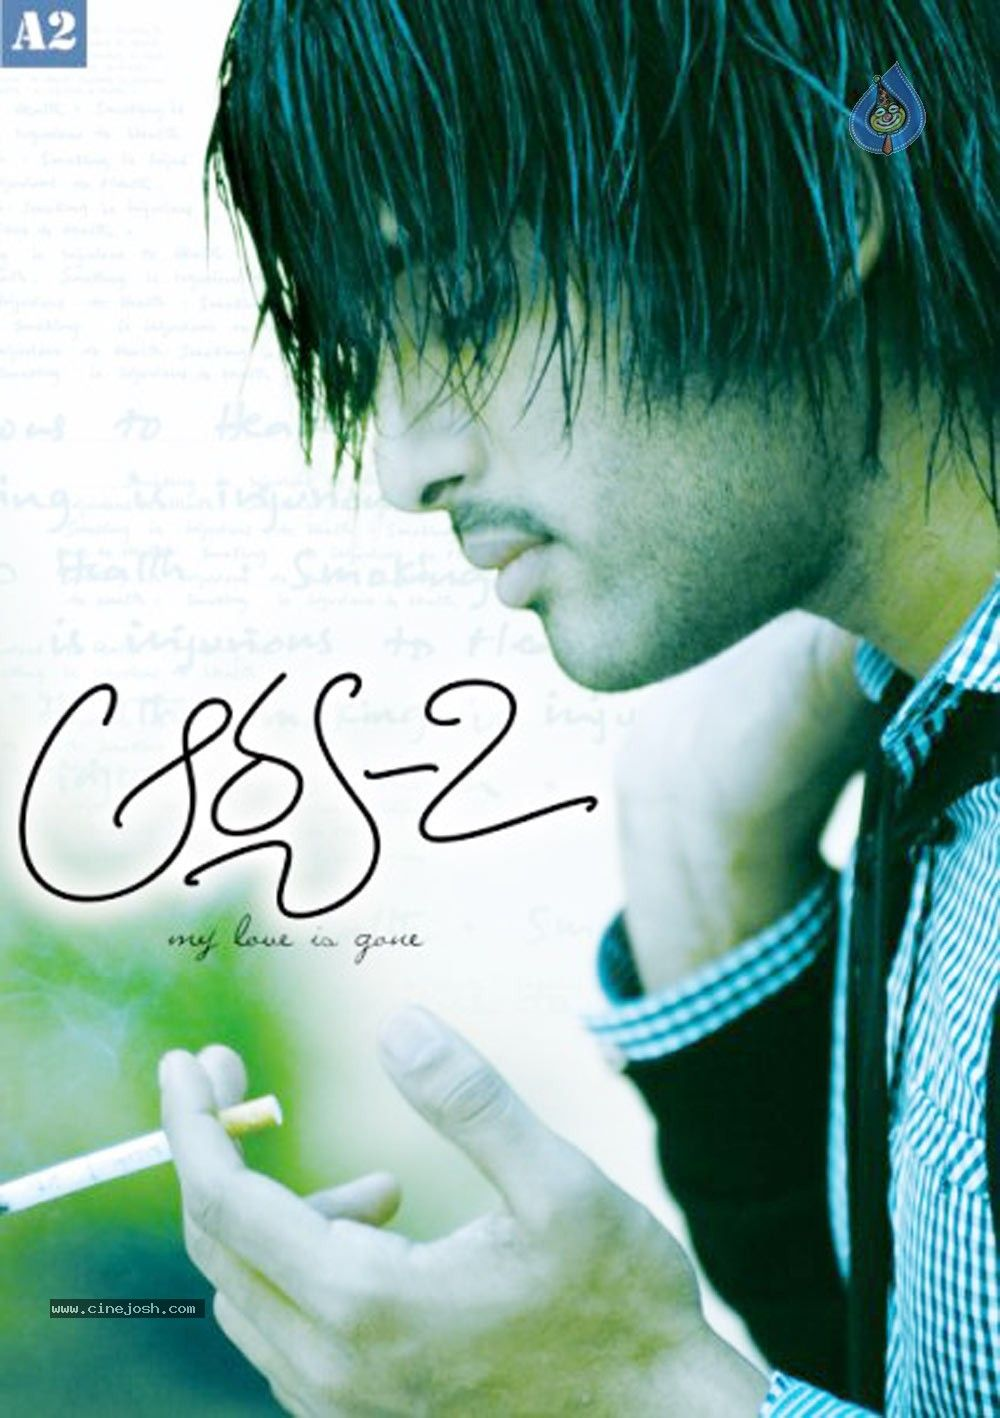 arya 2 telugu movie dubbed in hindi free download